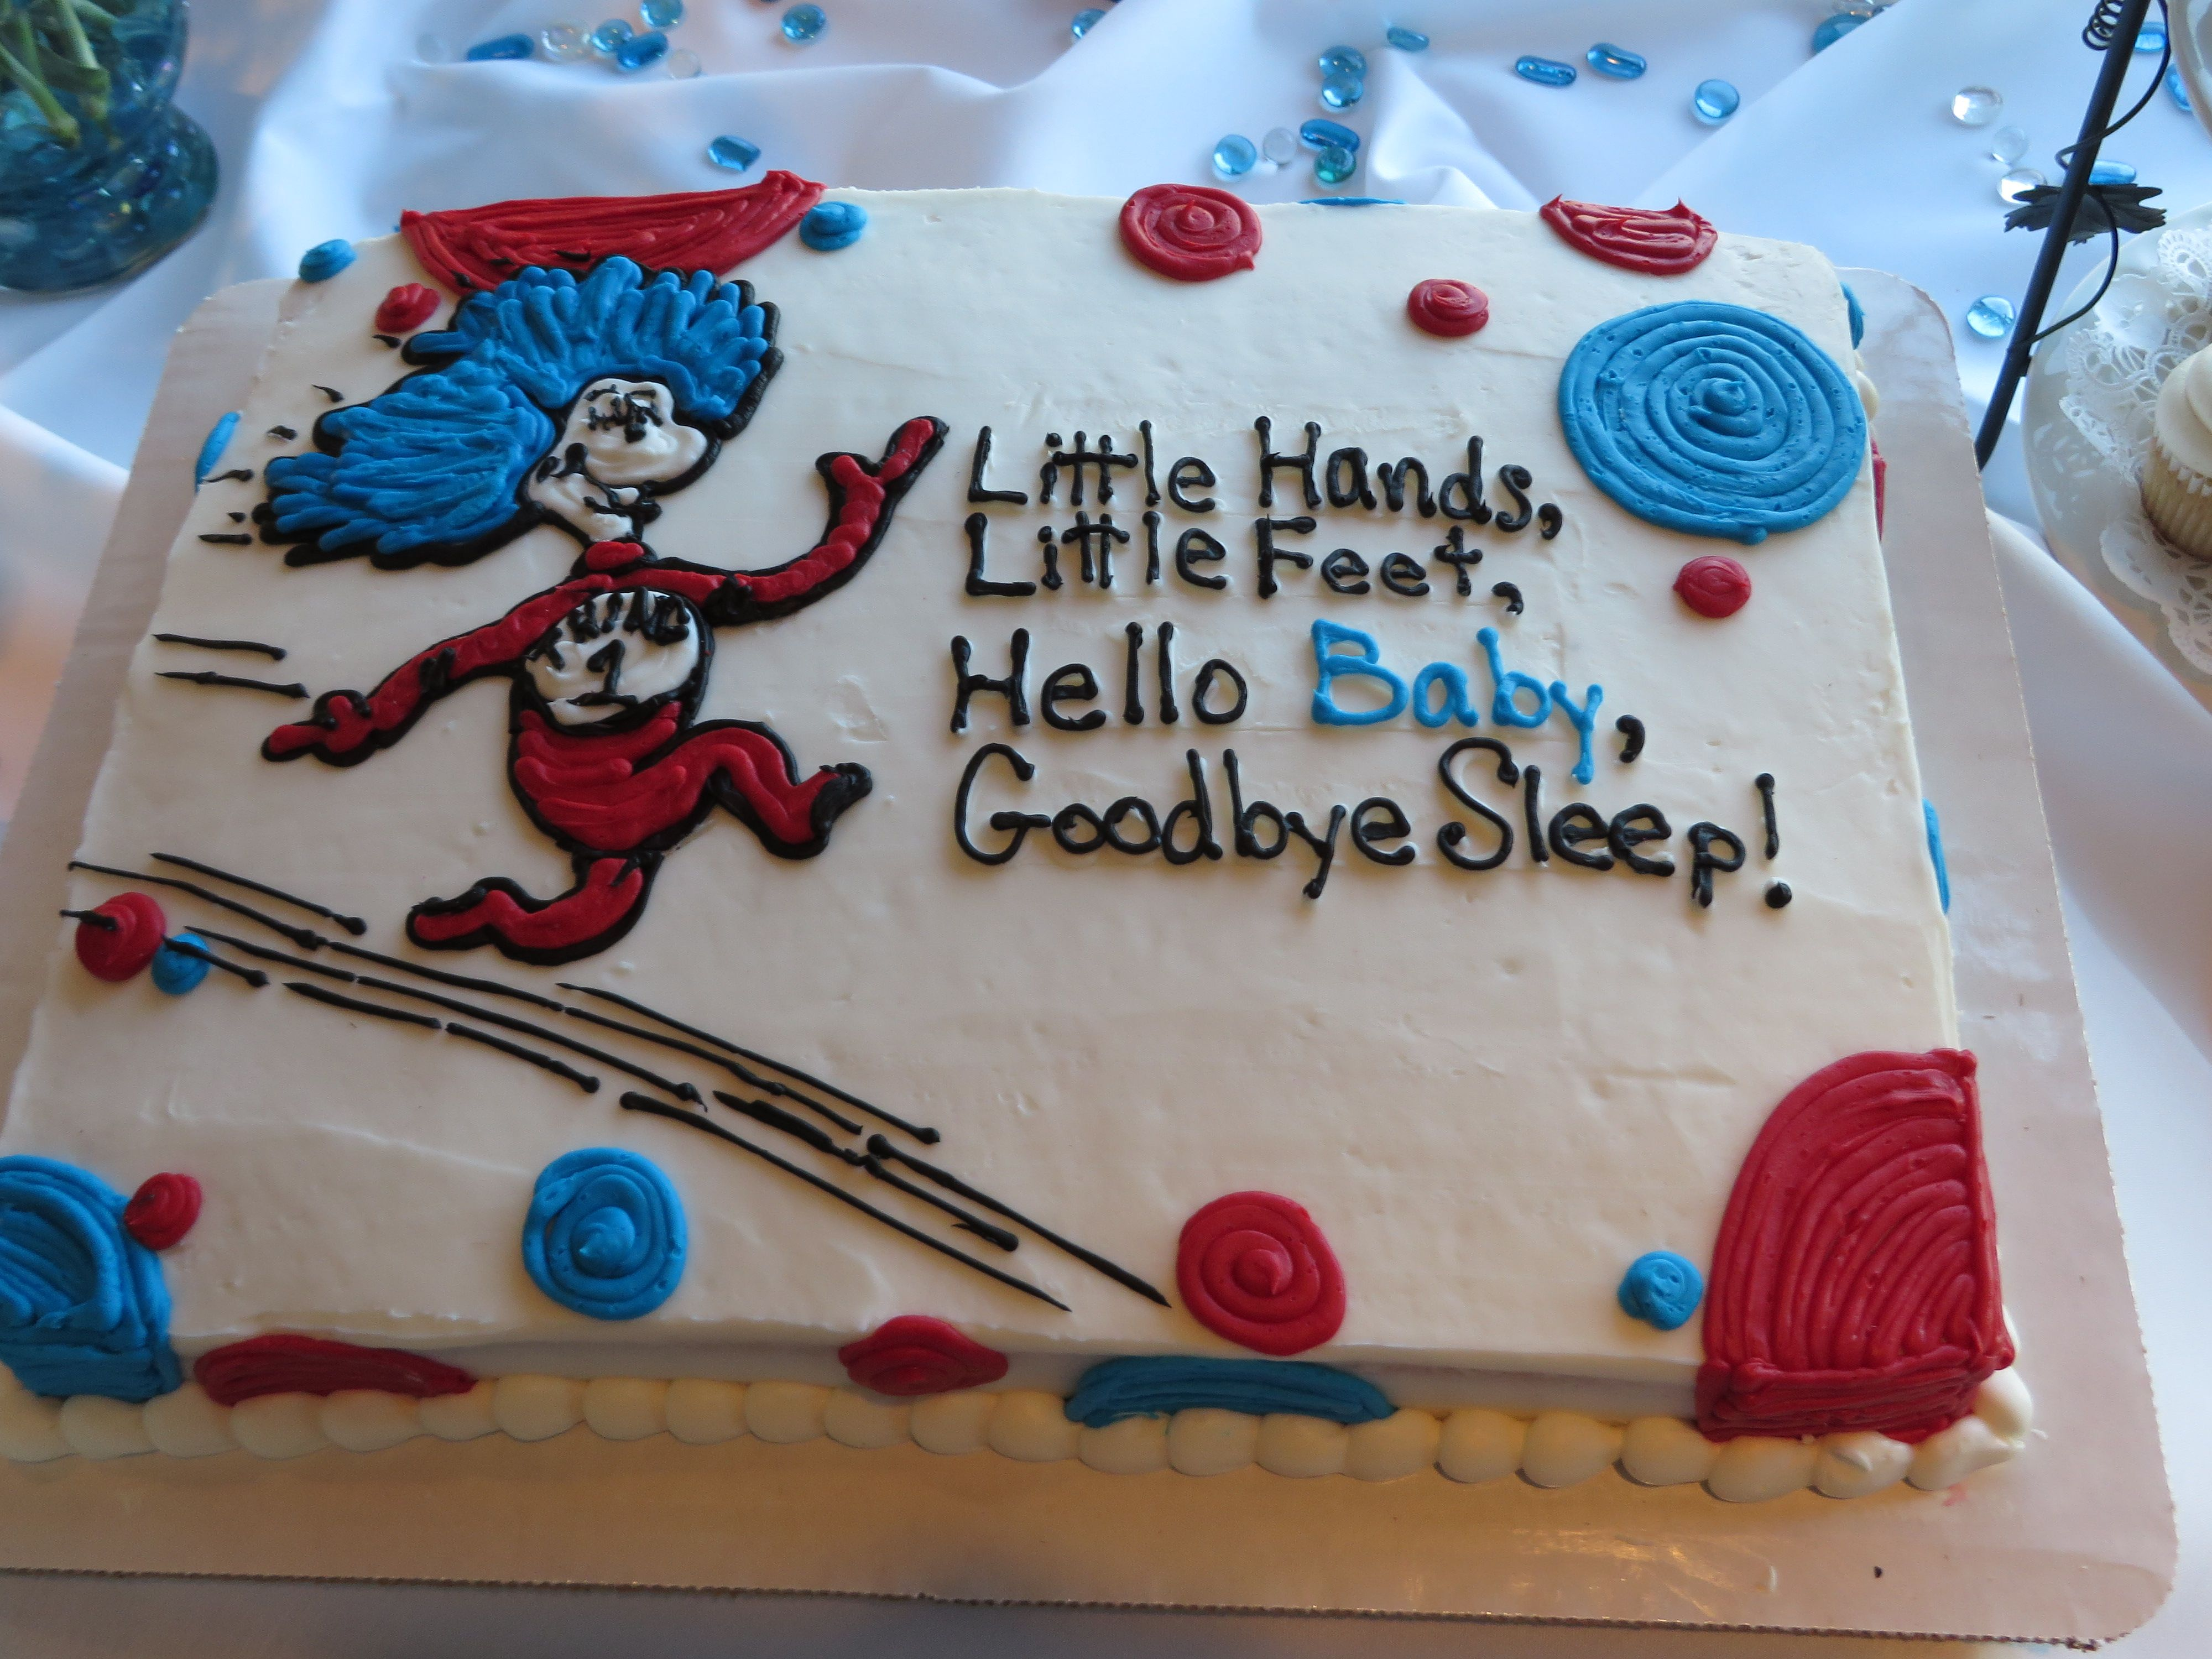 Gender neutral baby shower ideas pinterest - Cute Chower Cake For A Dr Seuss Themed Baby Shower